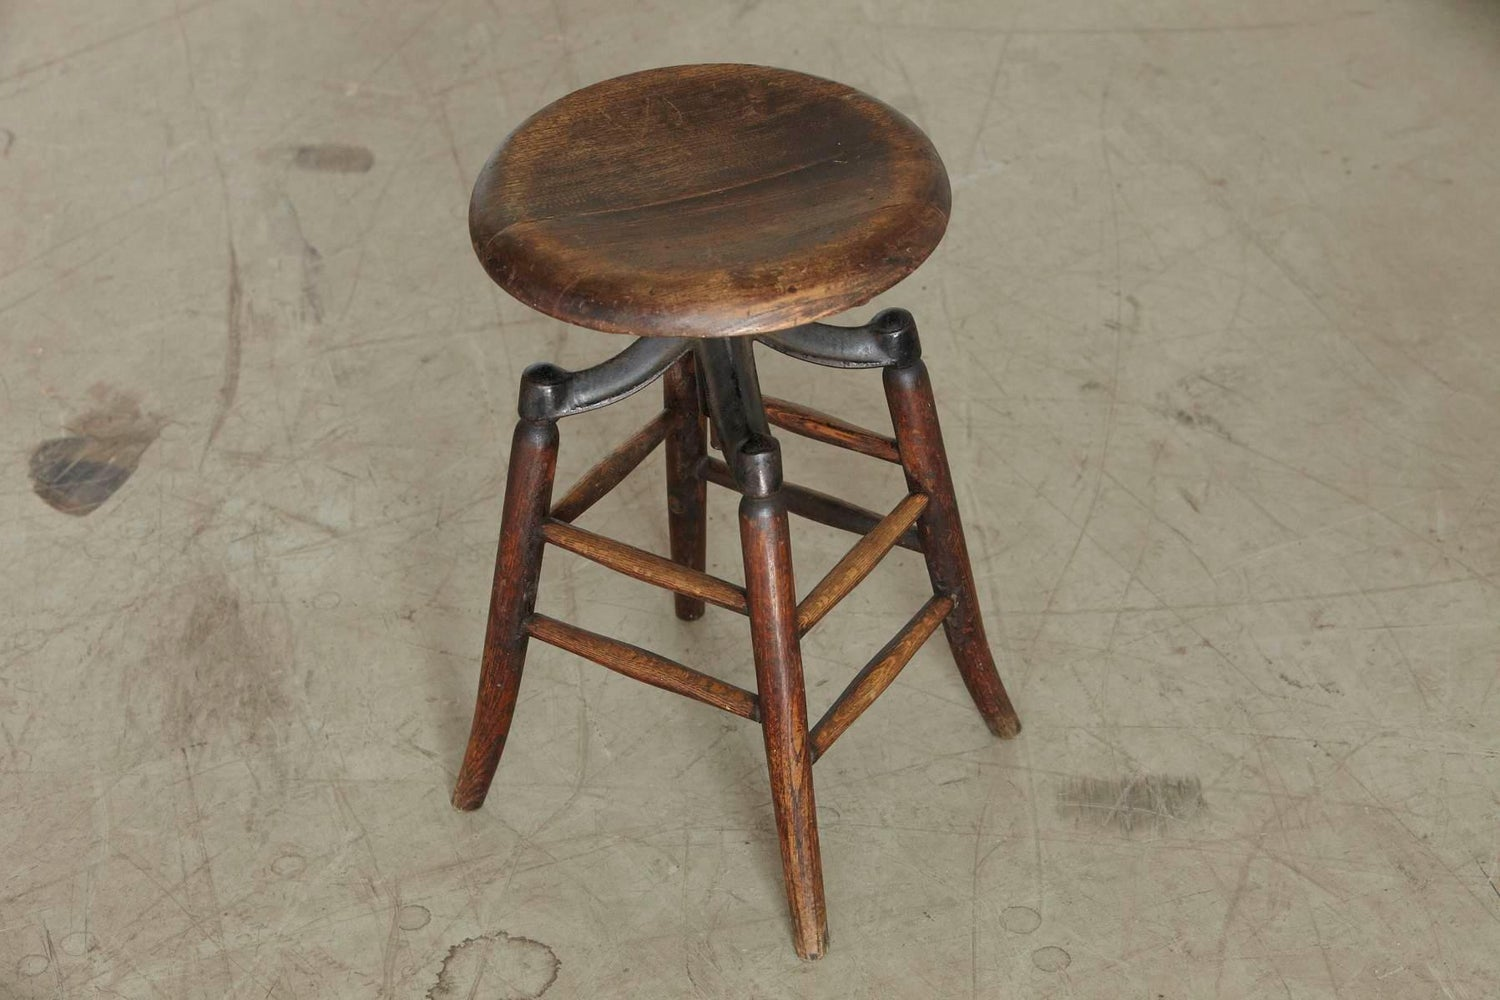 Terrific Industrial Solid Oak And Iron Workshop Stool Circa 1940S Ibusinesslaw Wood Chair Design Ideas Ibusinesslaworg